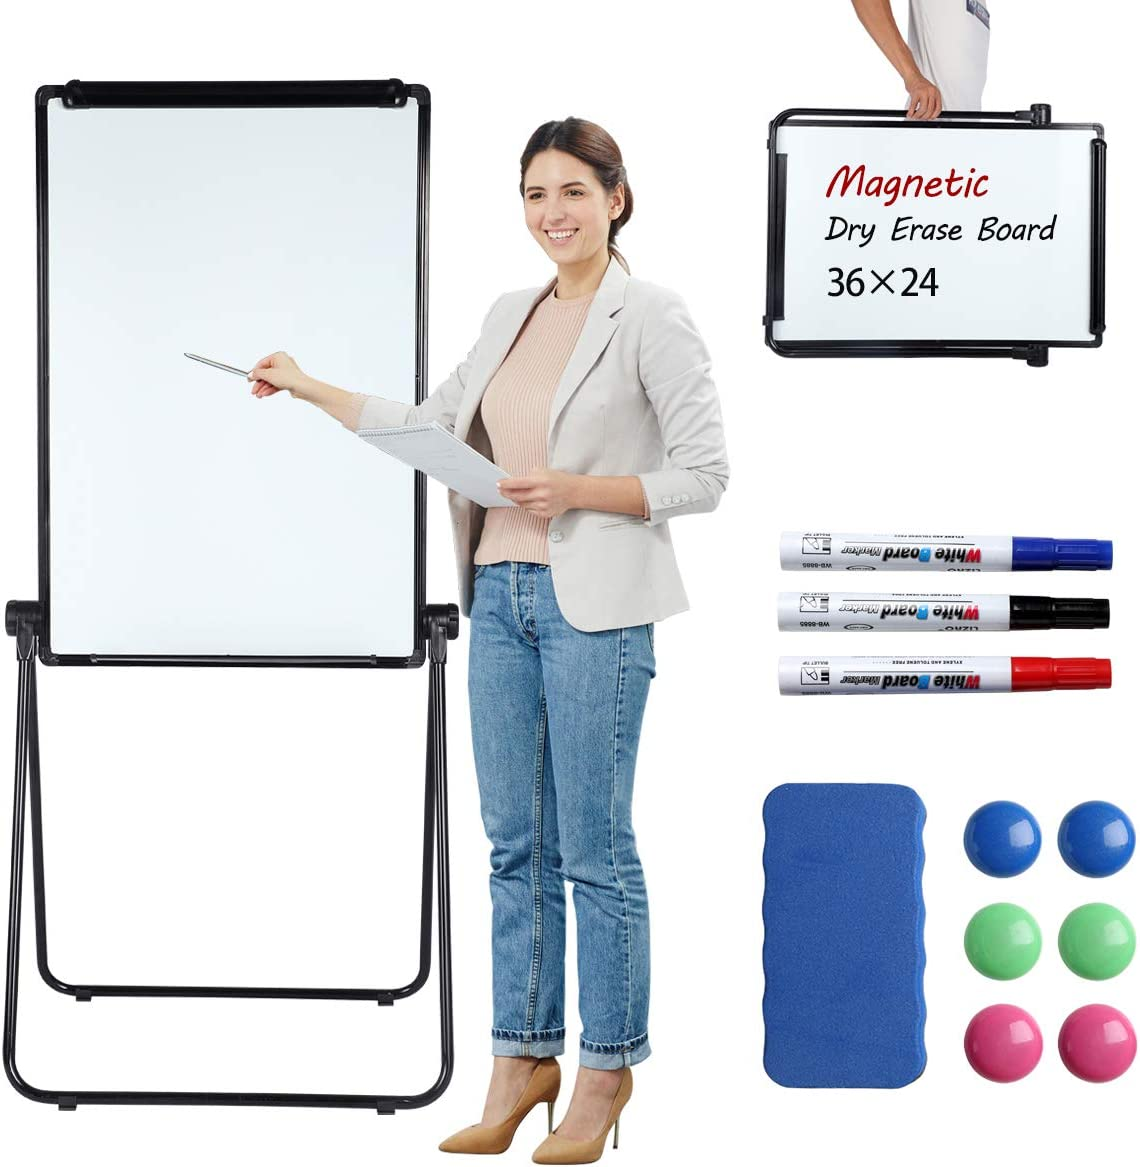 WonderView Stand White Board, Double Sided Magnetic Dry Erase Board Portable Whiteboard 3624 inch, Perfect for Classroom, Preschool, Homeschool, Restaurant and Presentation